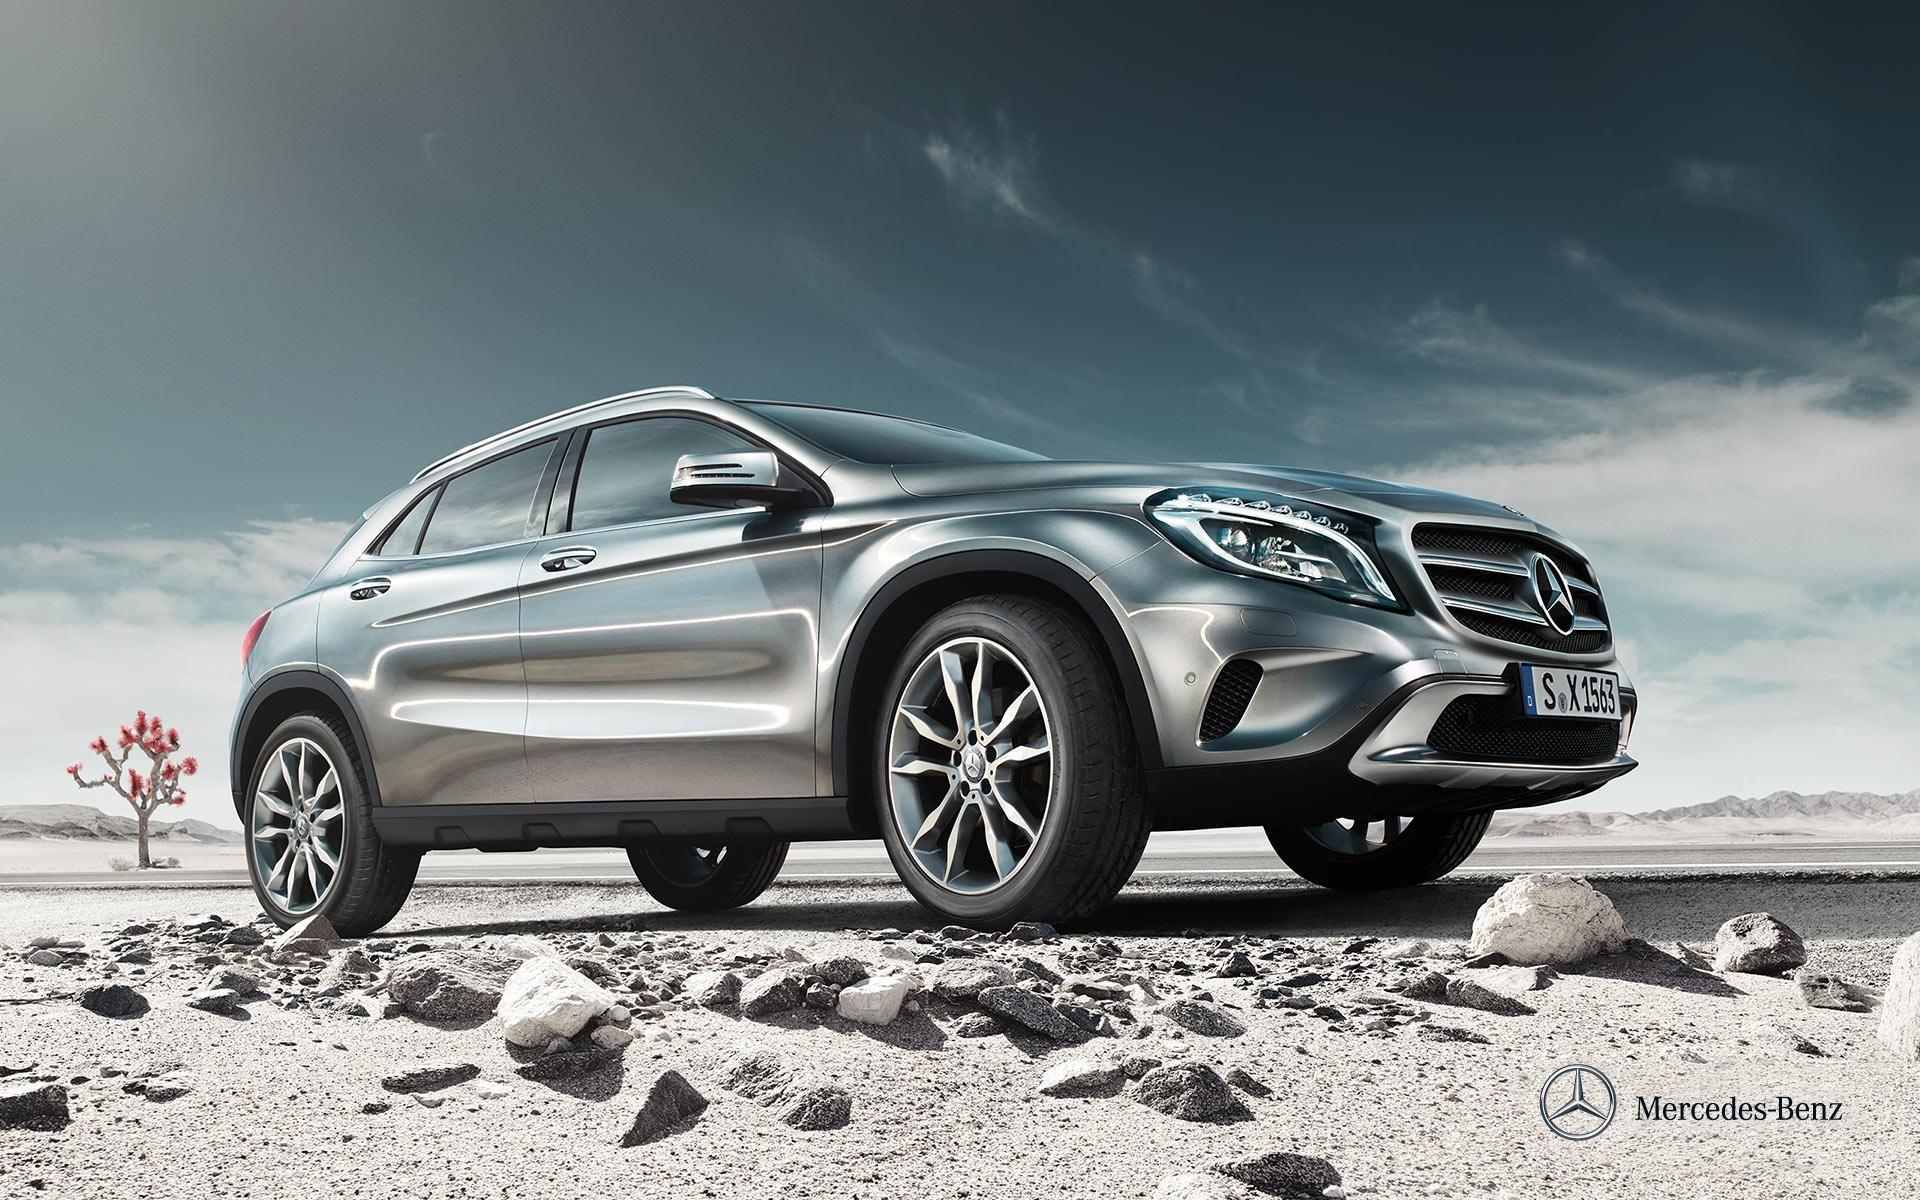 Mercedes-Benz GLA-Class Wallpaper 7 - 1920 X 1200 | stmed.net